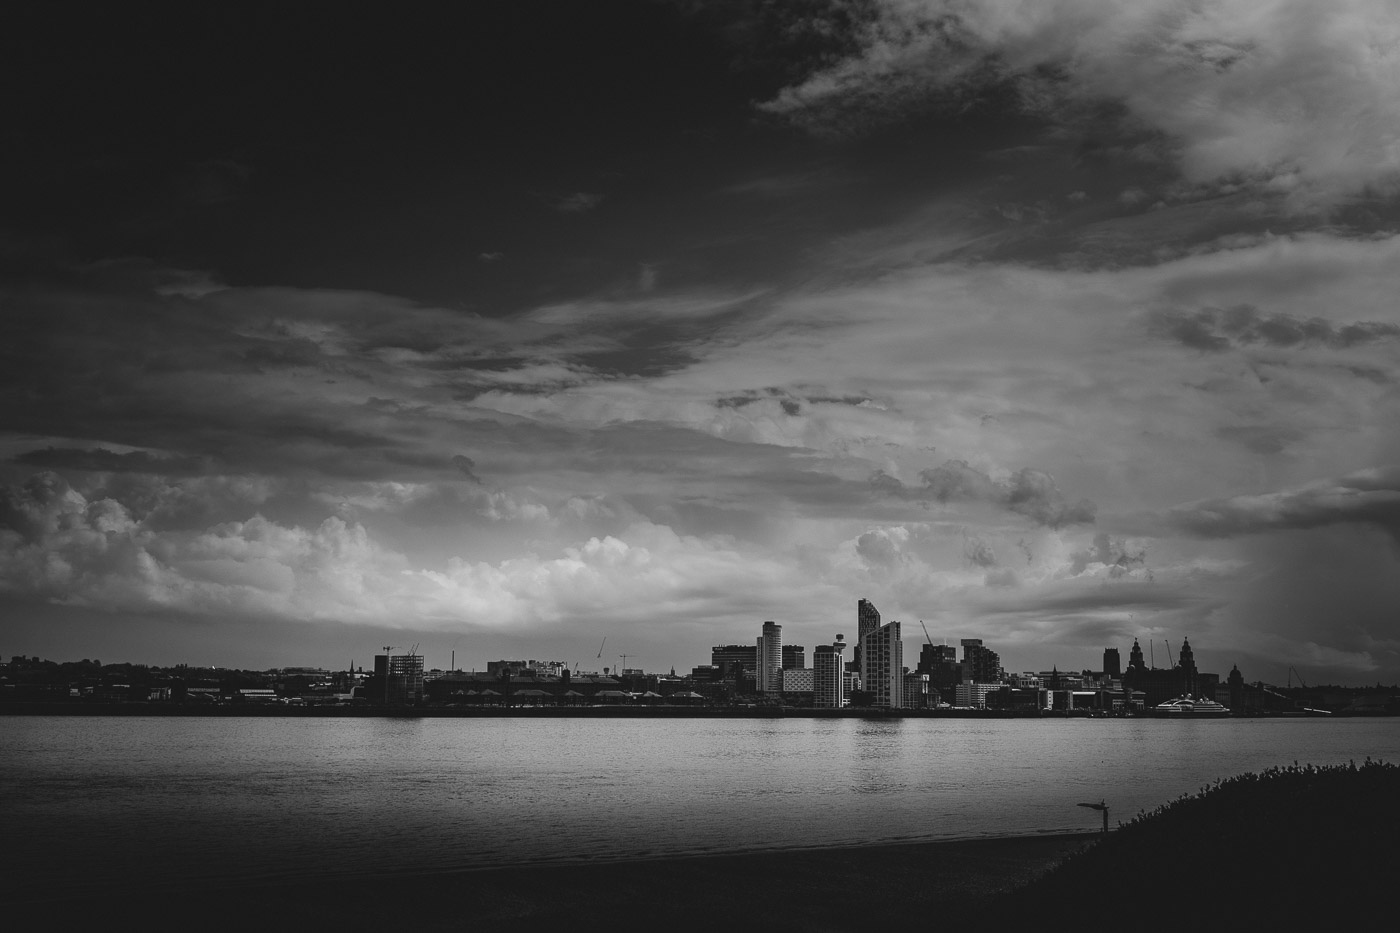 The city of Liverpool in black and white, as seen from Wallasey